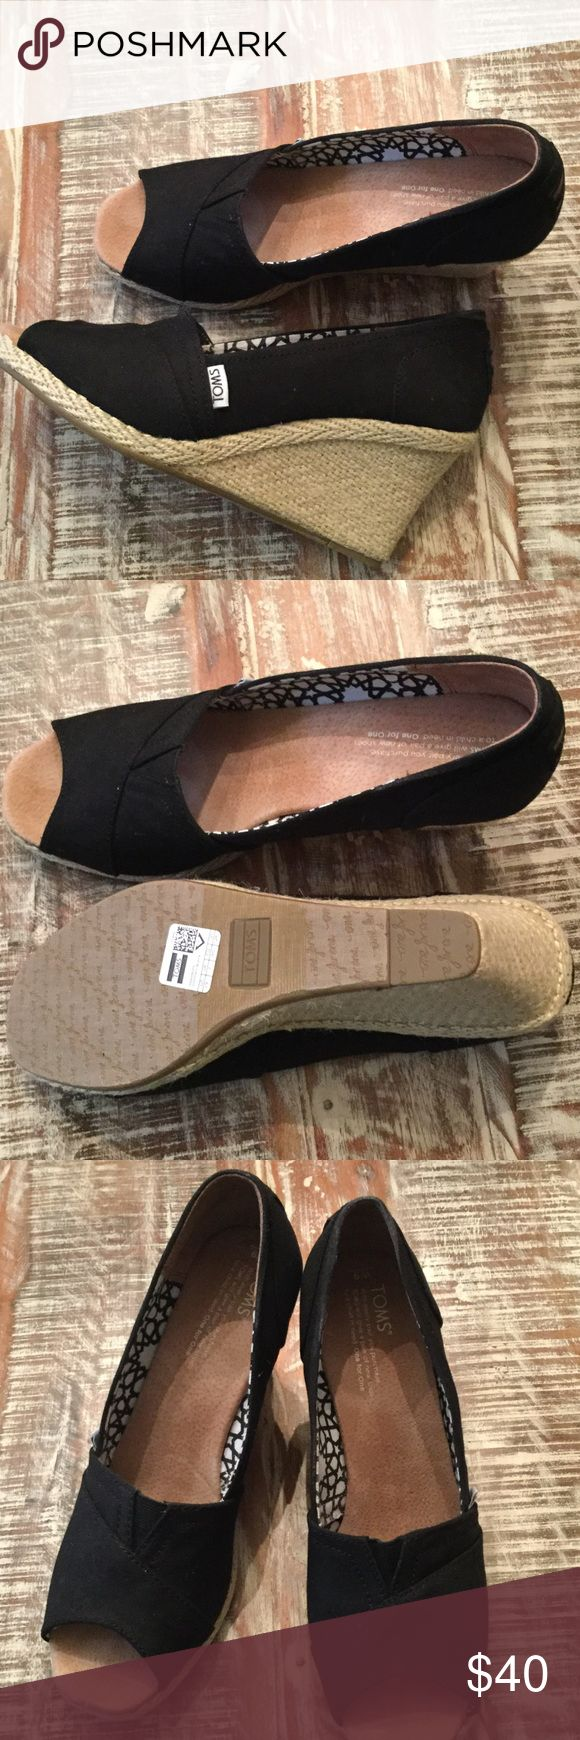 Practically NEW Toms espadrilles Like new condition, black canvas Toms with jute wrapped heel. Only worn briefly in my home to try. TOMS Shoes Espadrilles